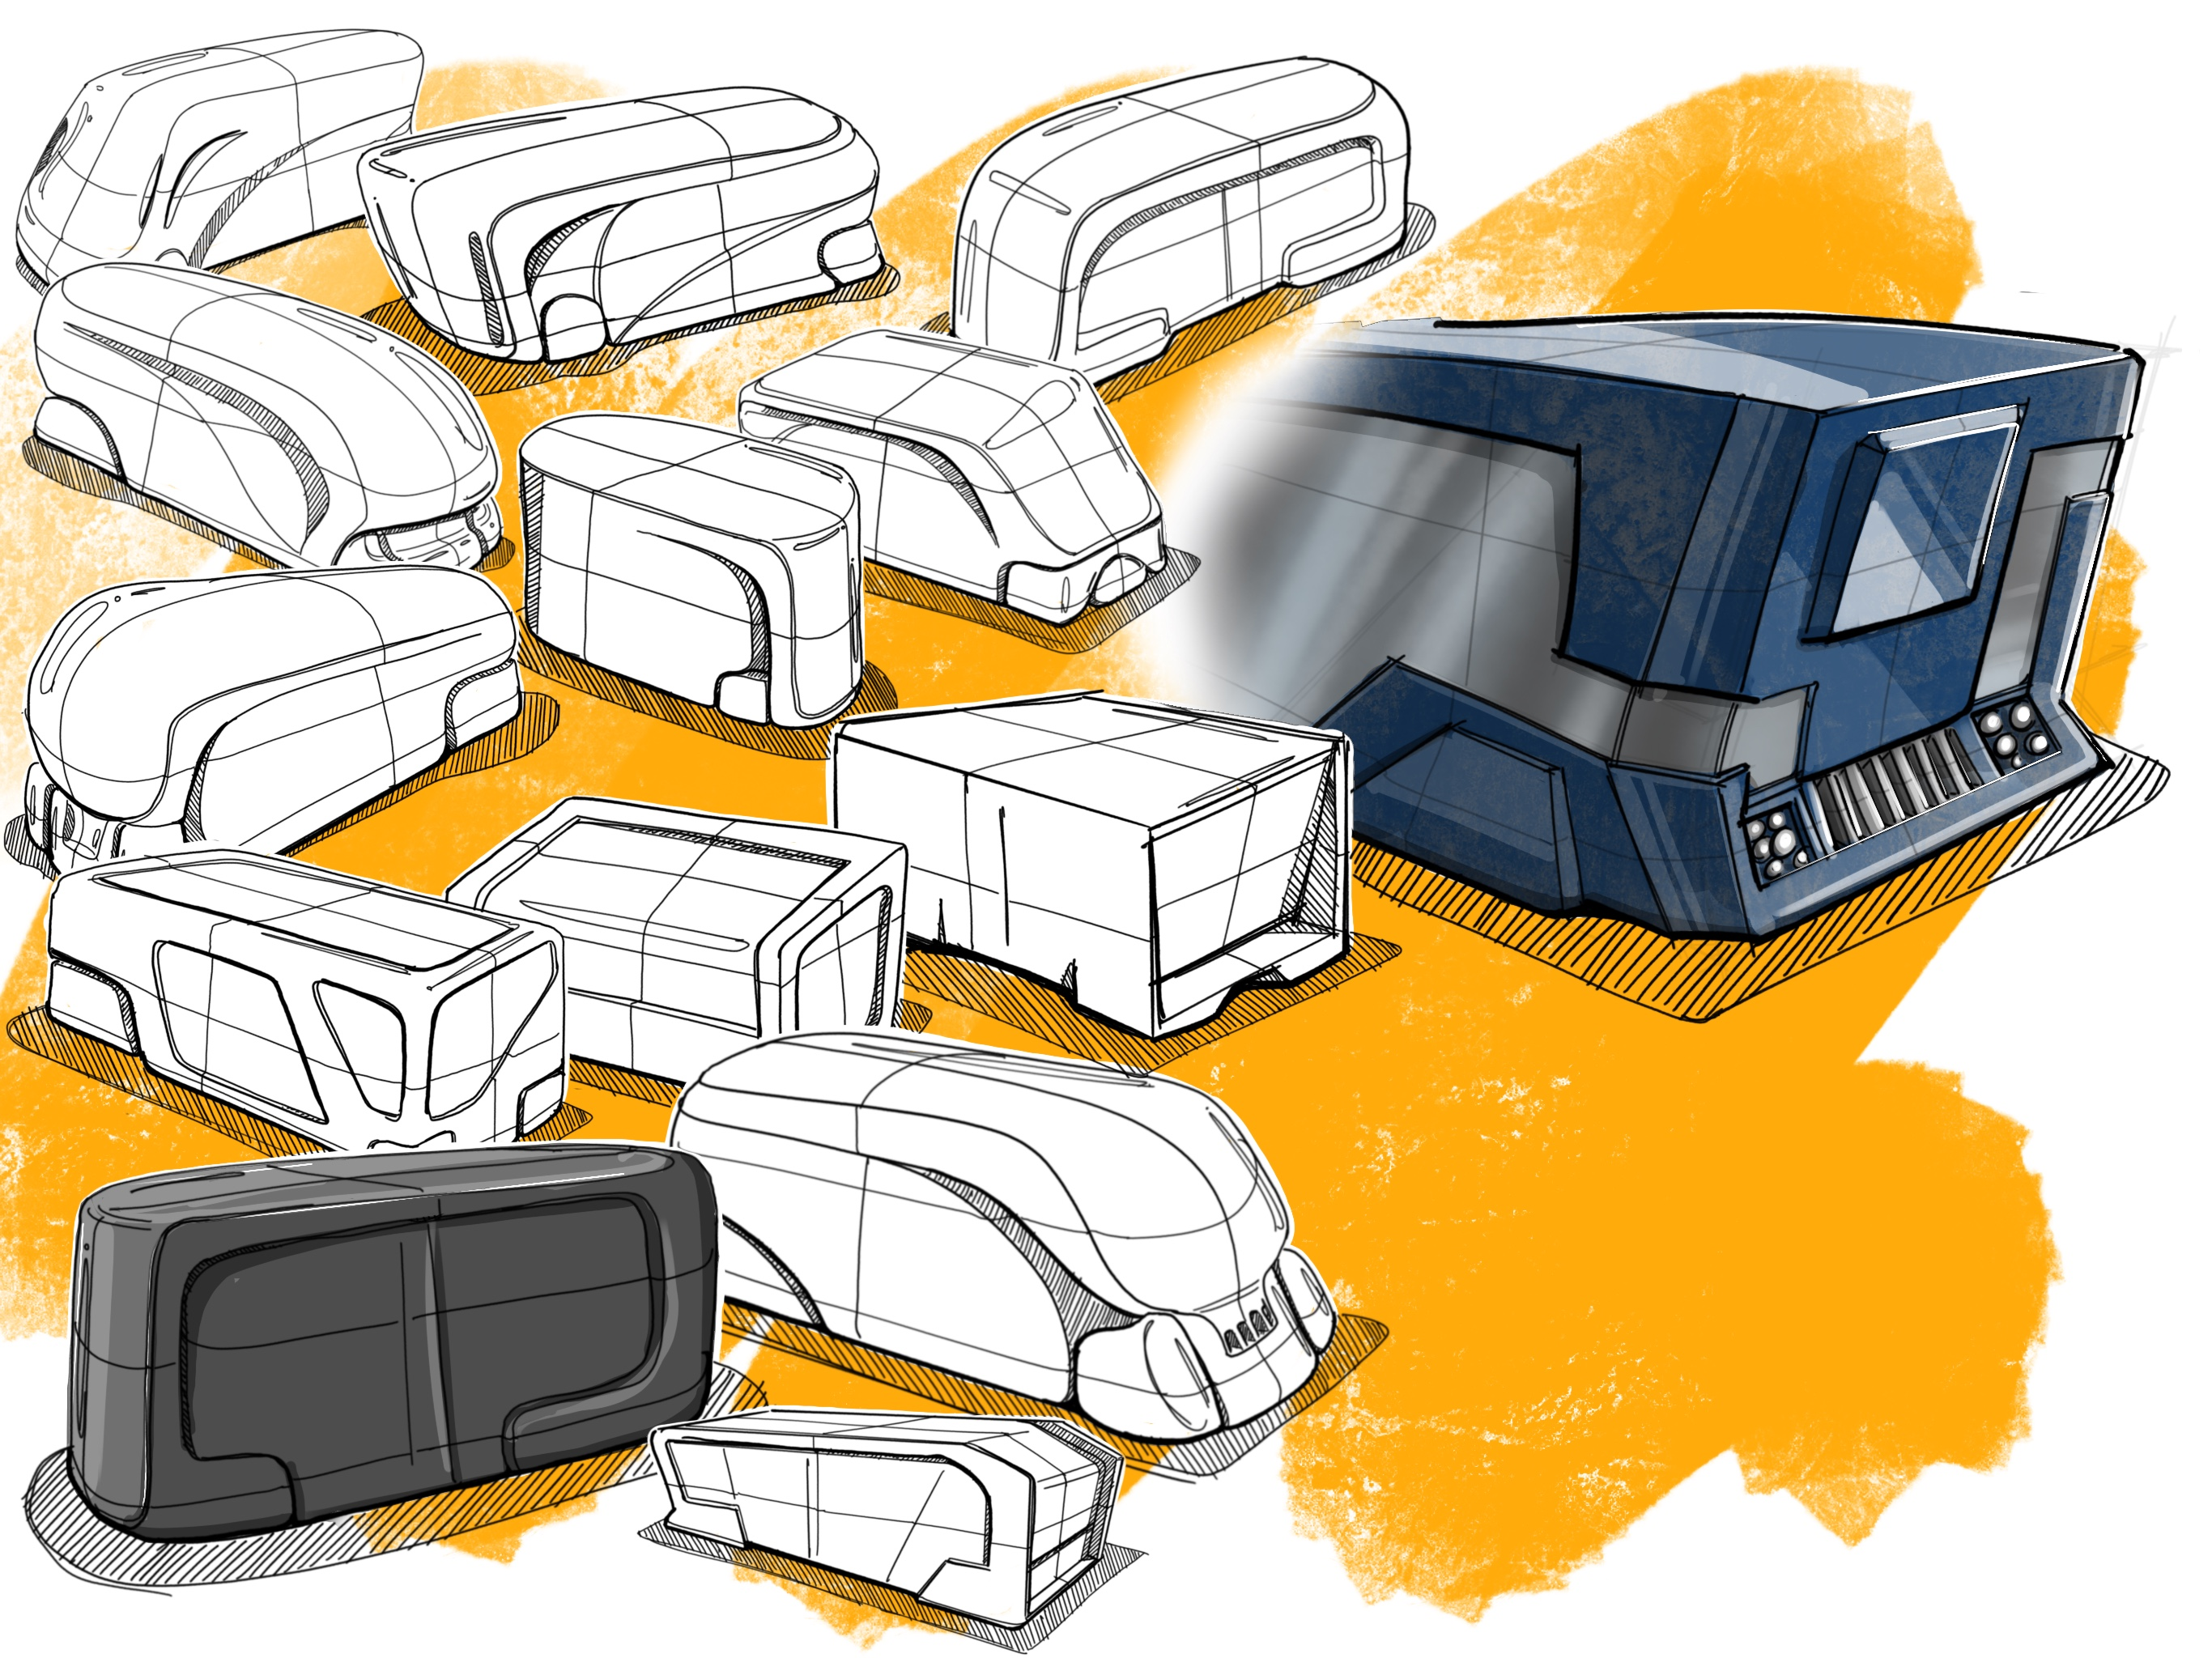 Some of my sketches that related to the final concept for the vehicle. Our aesthetics were inspired by future-brutalism.